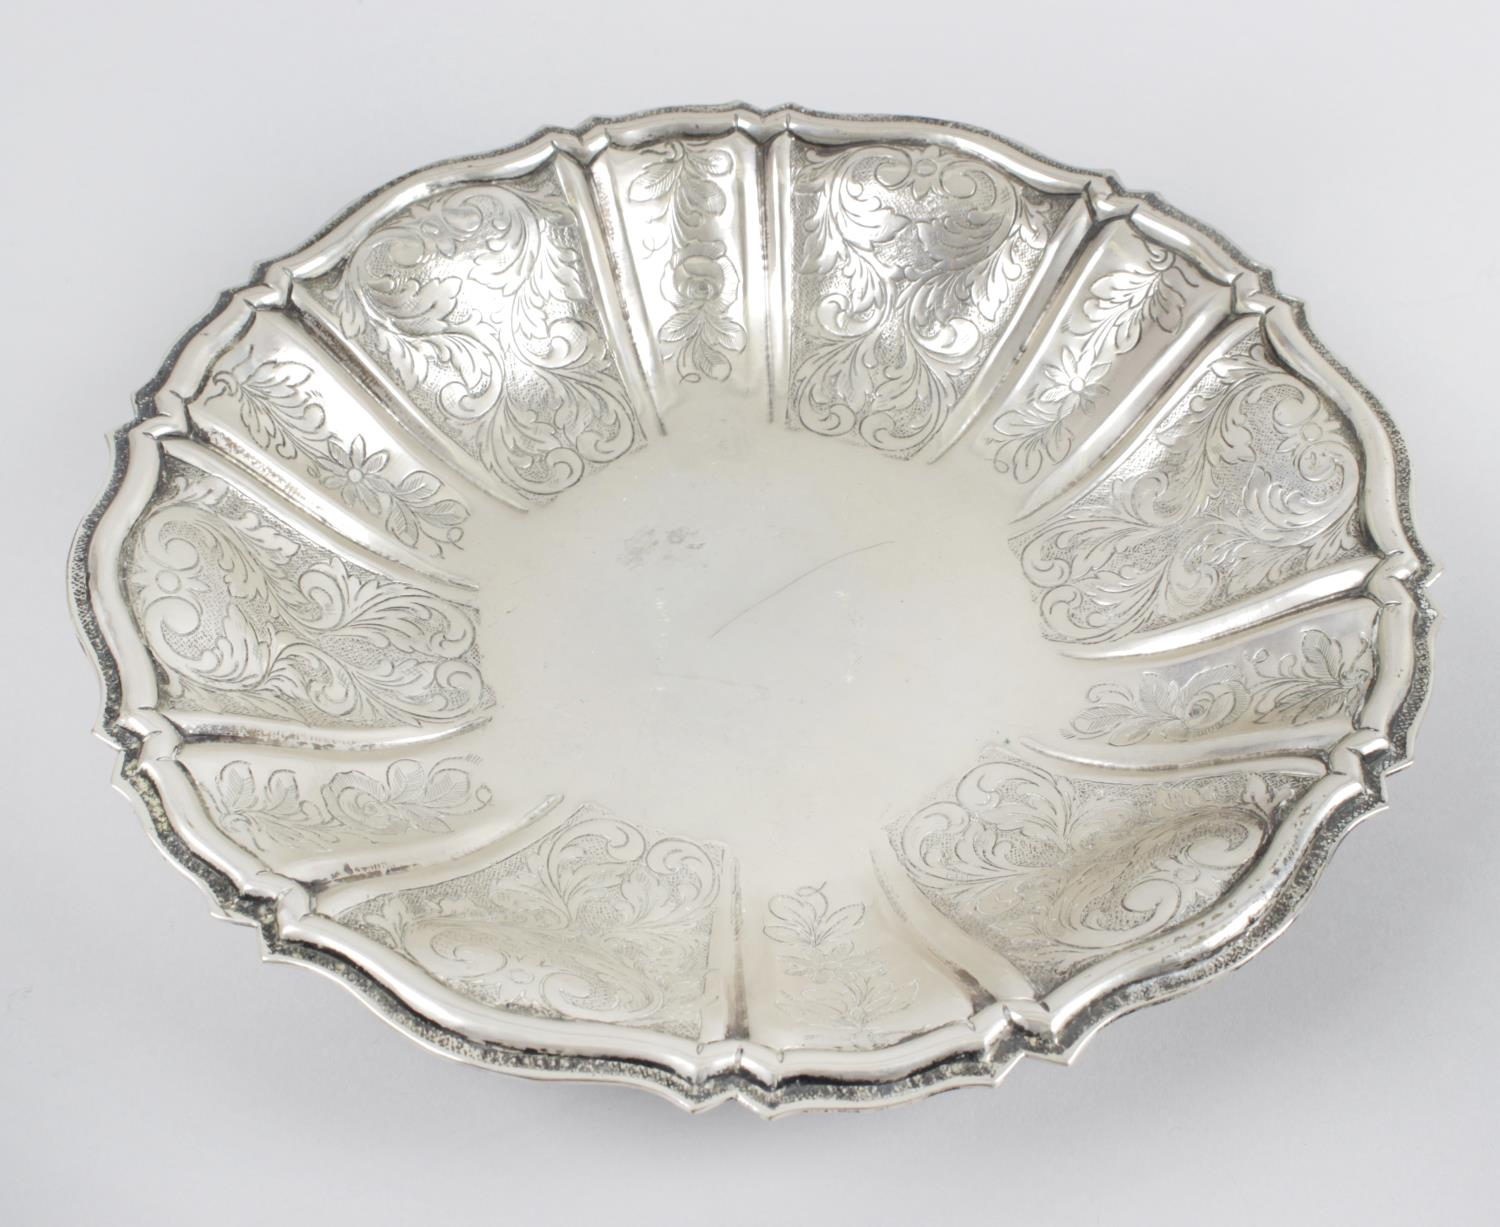 Lot 170 - A Scandinavian dish, the circular lobed form chased with floral scrolls to the raised edge.